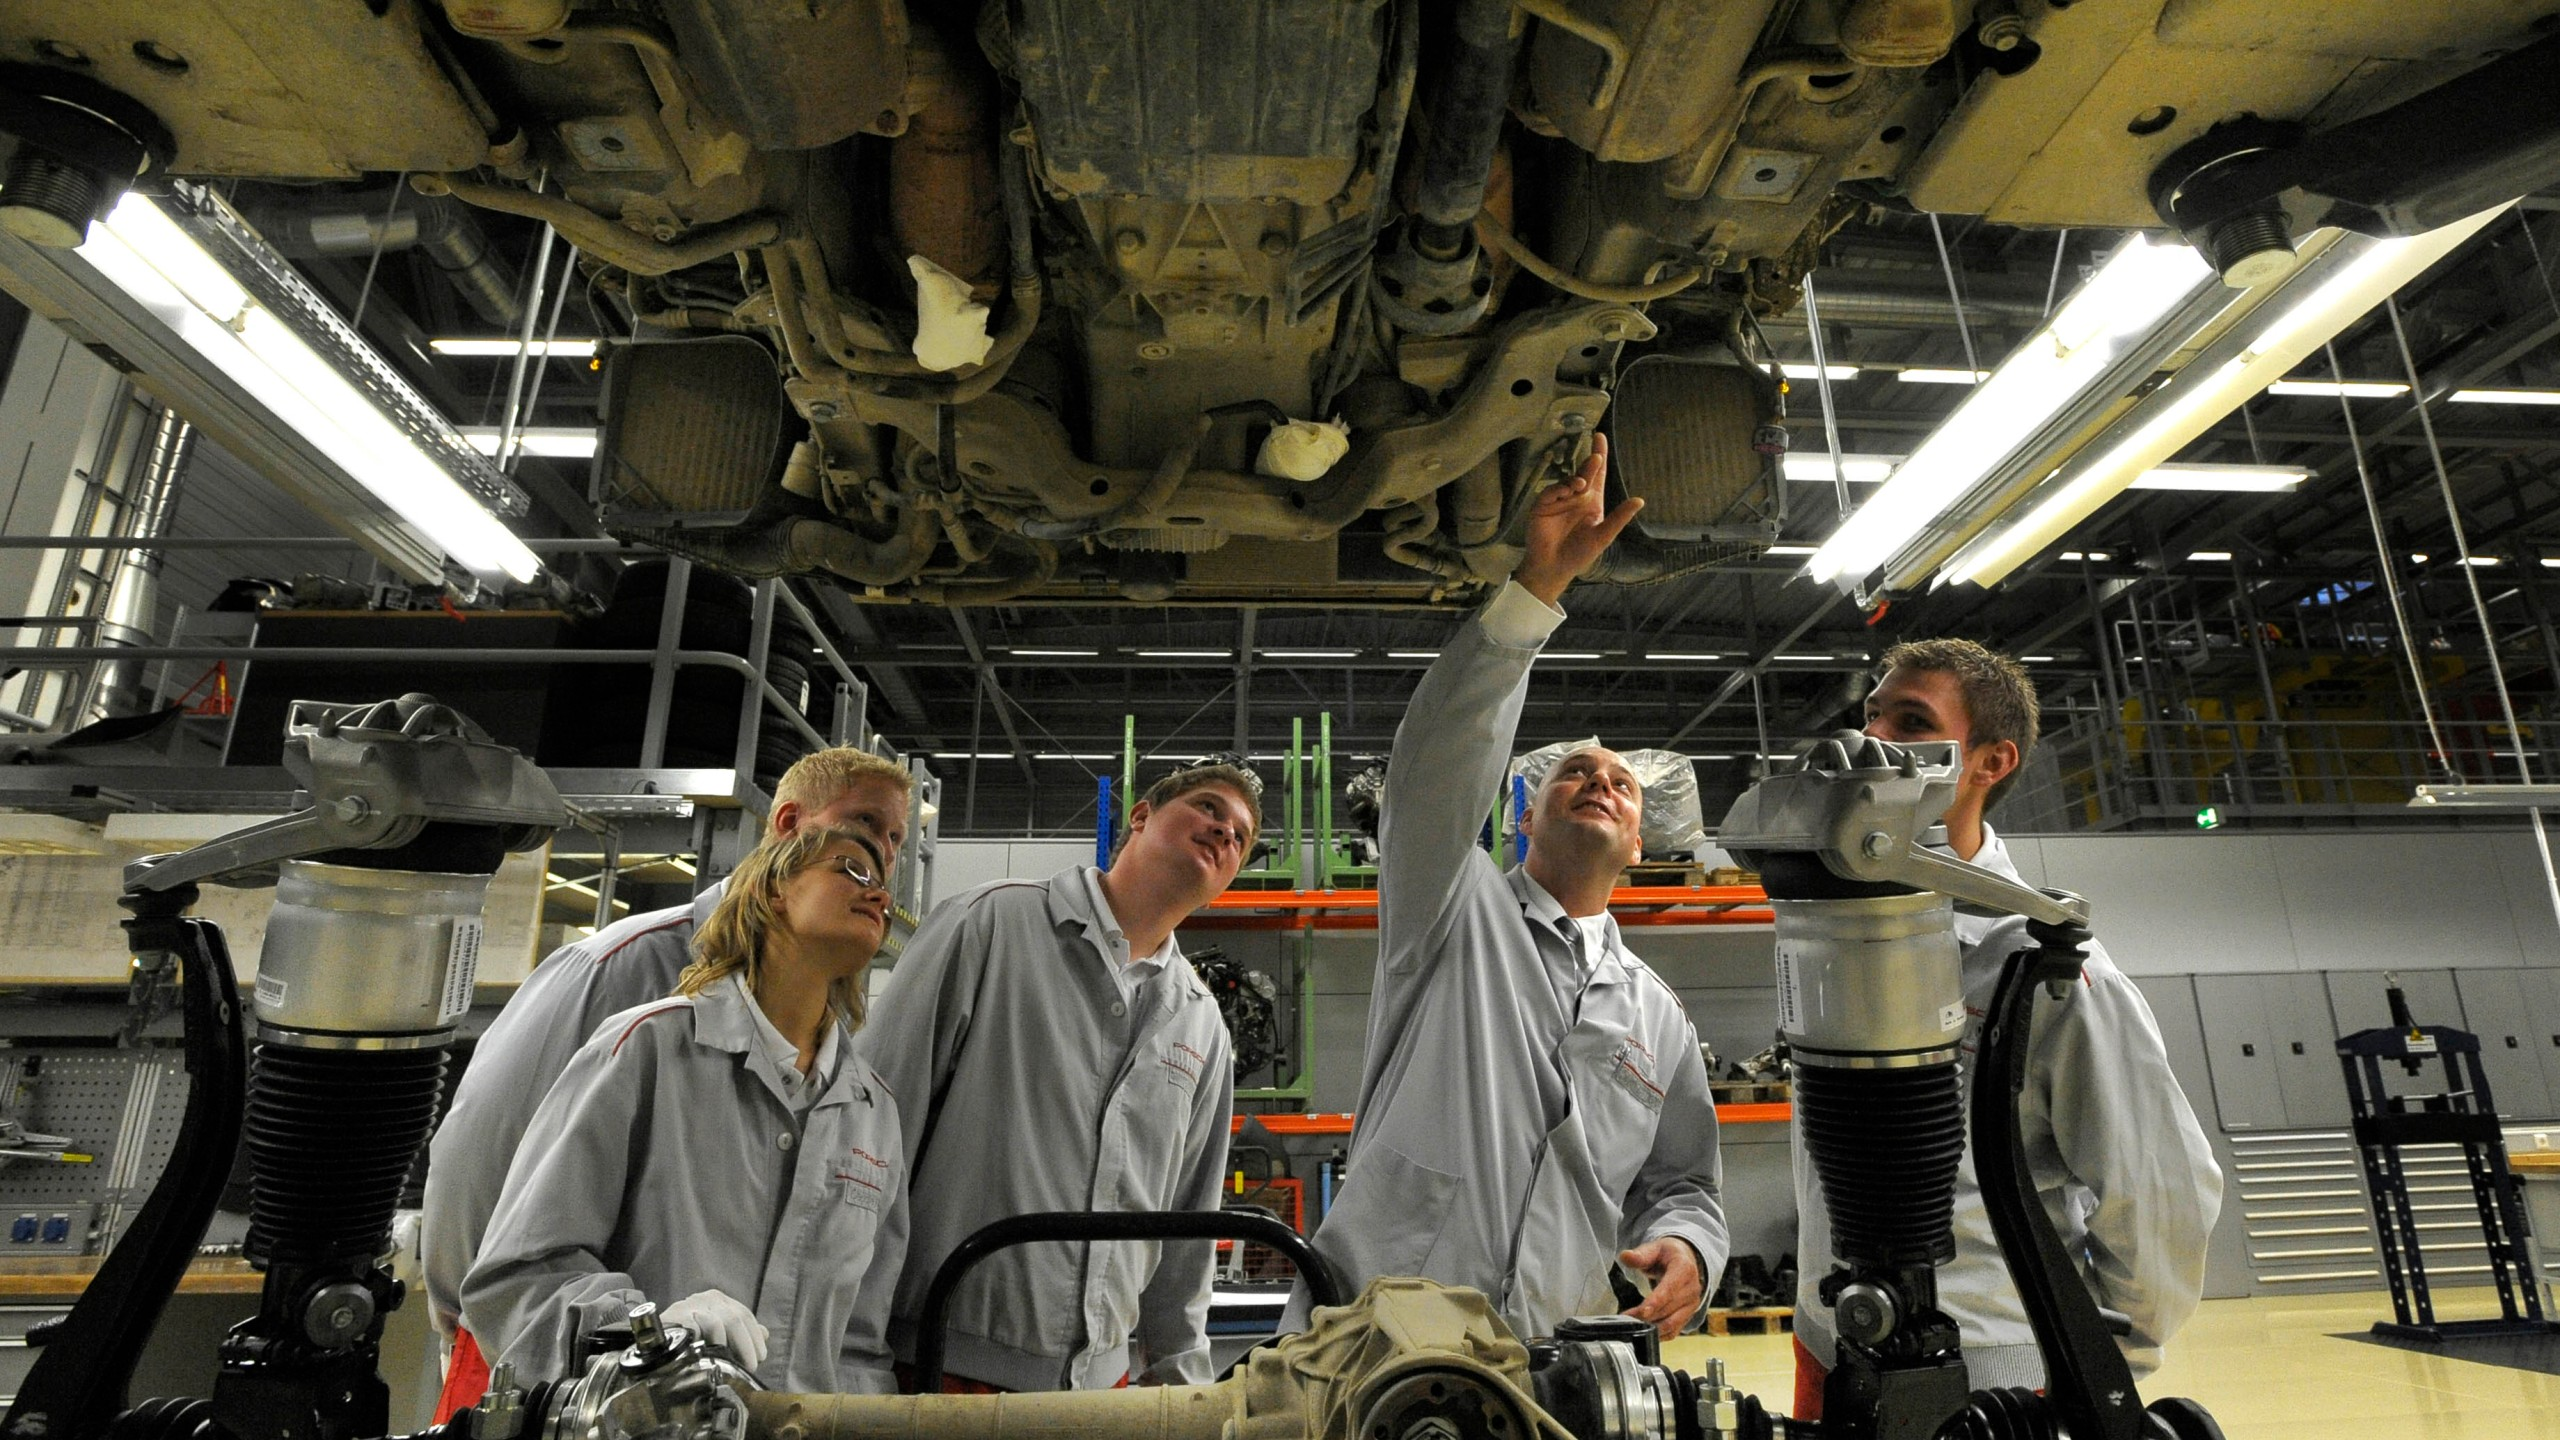 Looking for an apprenticeship? Wisconsinites have new tool to find one